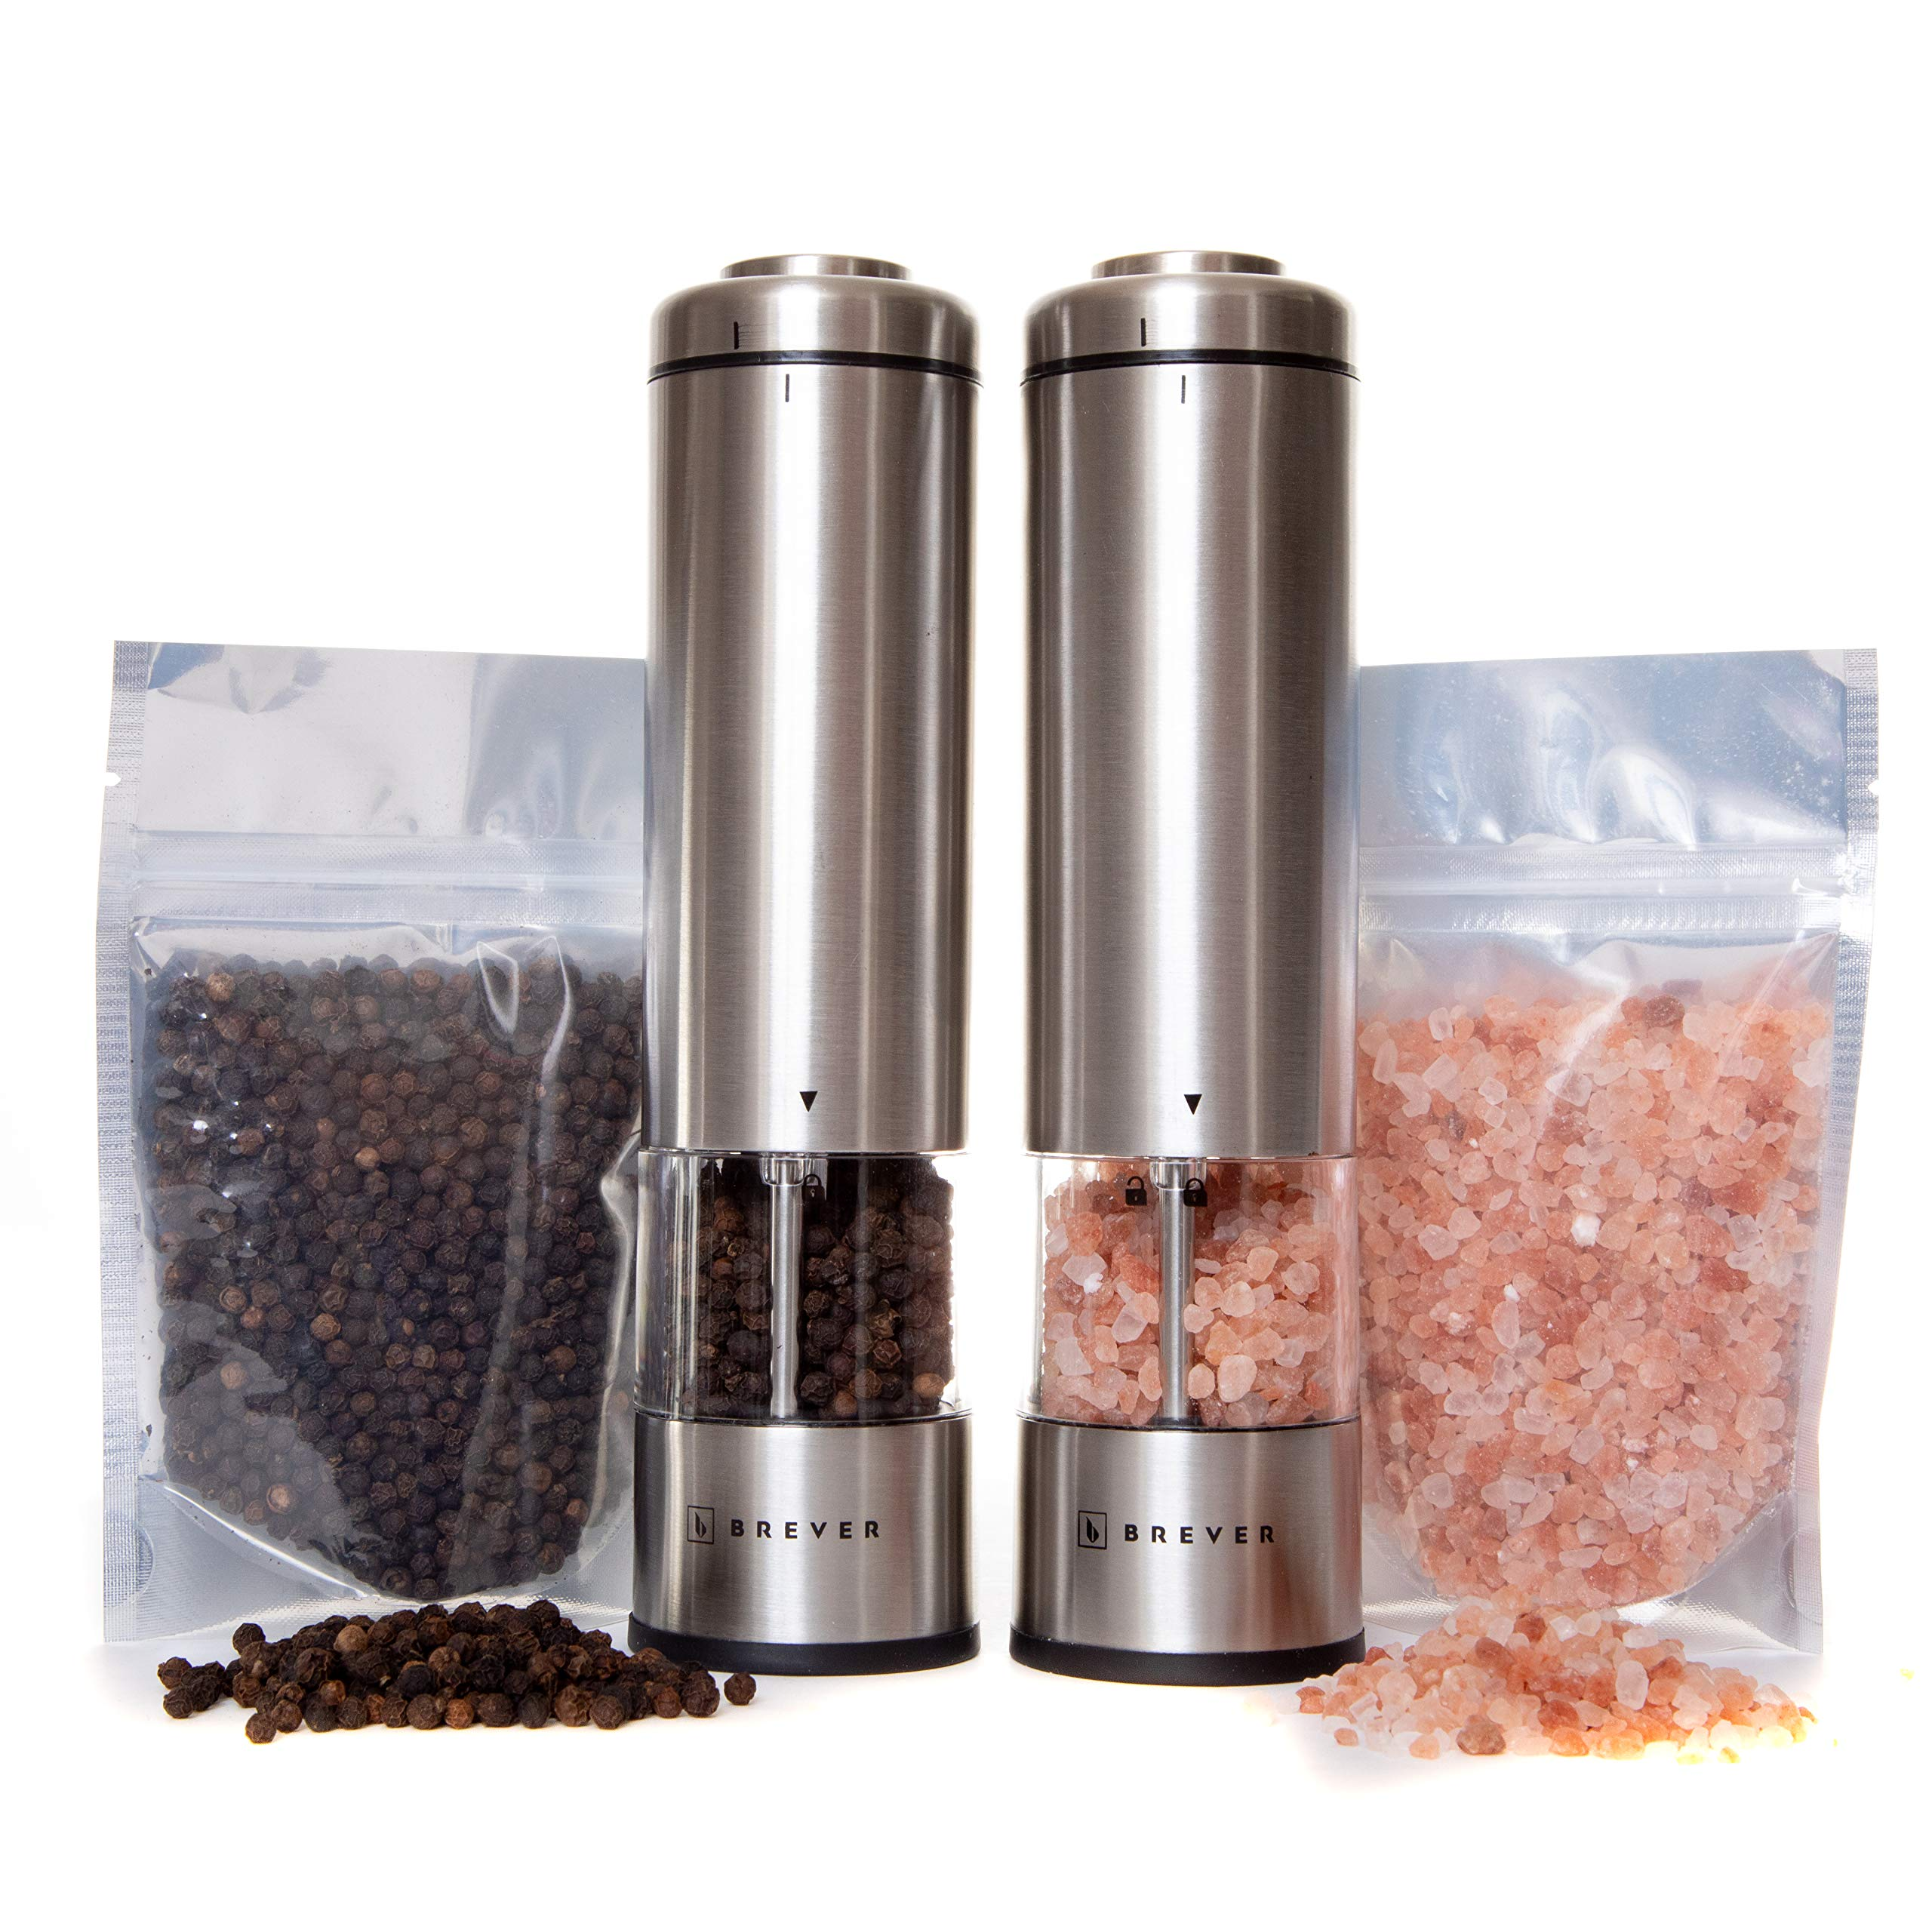 BREVER Premium Electric Salt & Pepper Grinder Set | With Free Himalayan Salt & Whole Black Peppercorn | Pack Of 2 Mills With free Mill Rest | Adjustable Coarse | LED Spotlight | Battery Operated by BREVER